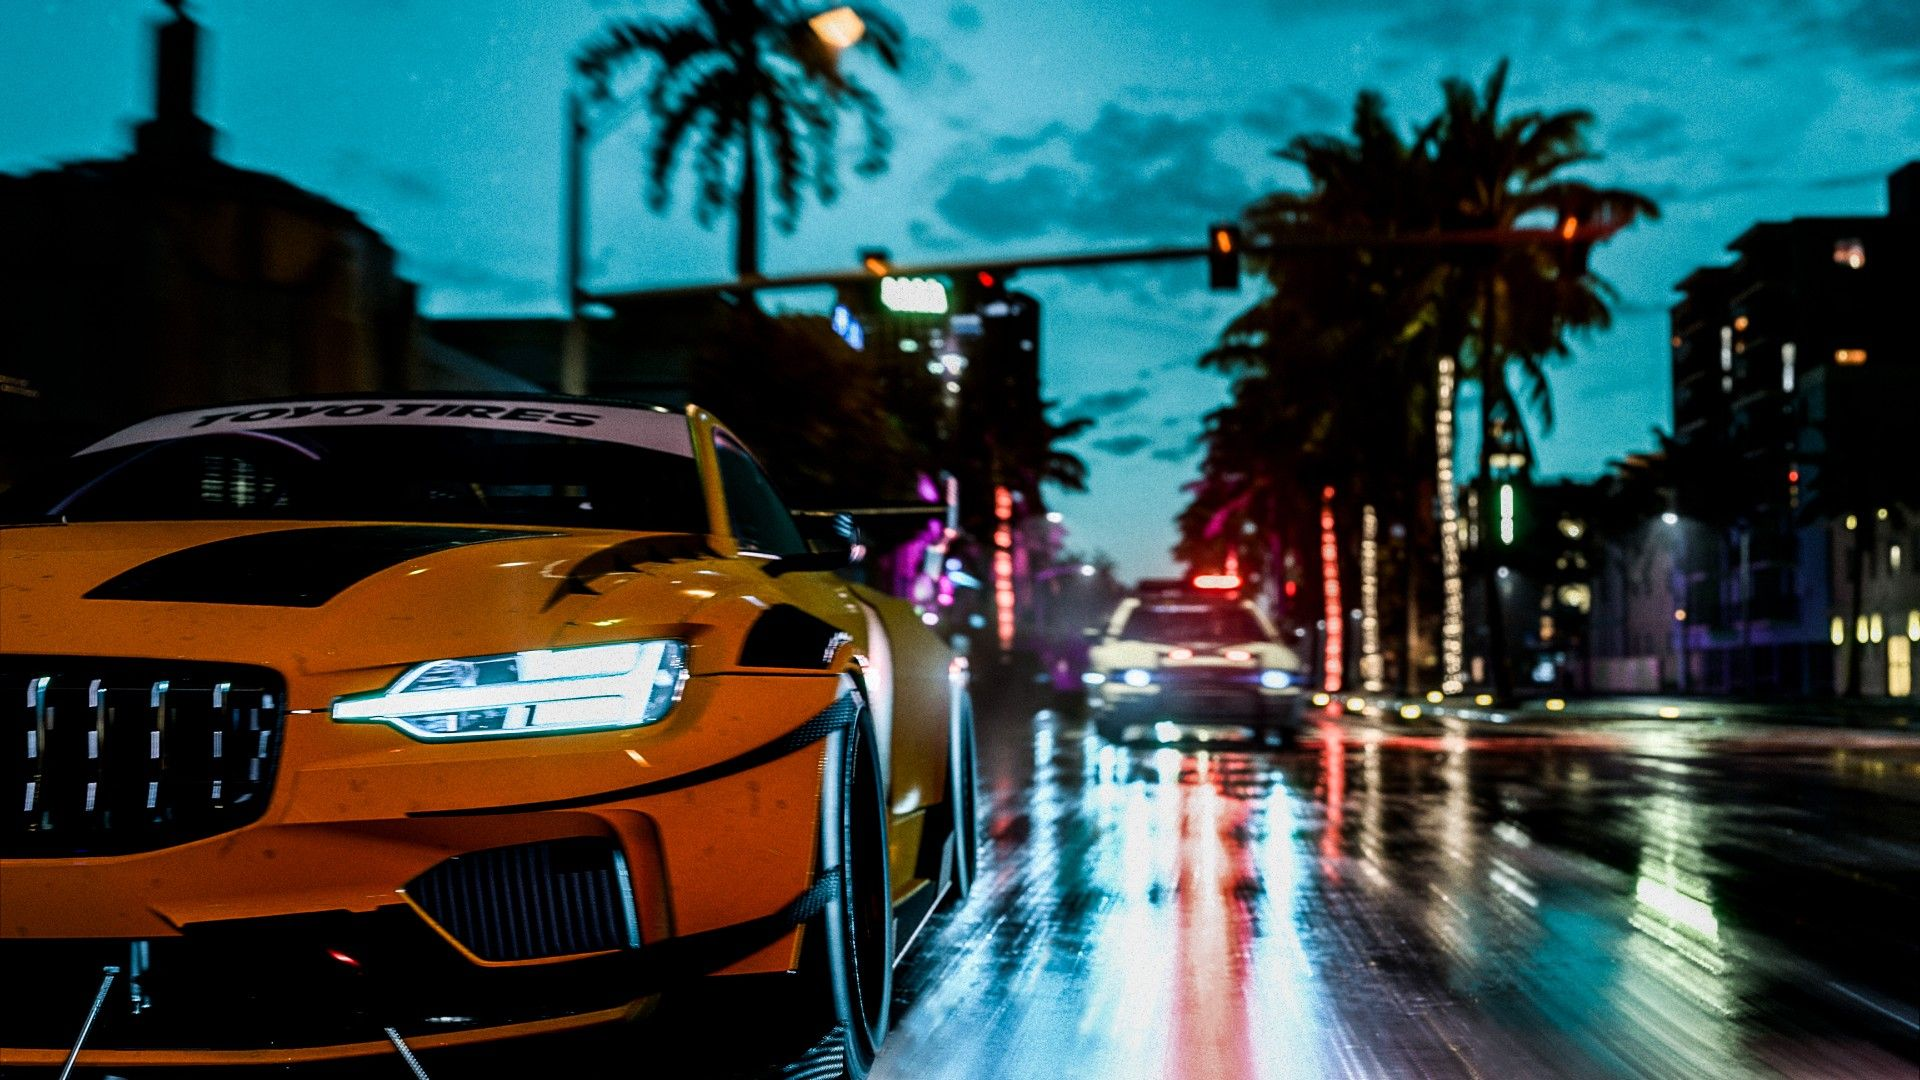 Pin By Near On Need For Speed Need For Speed Games Need For Speed Street Racing